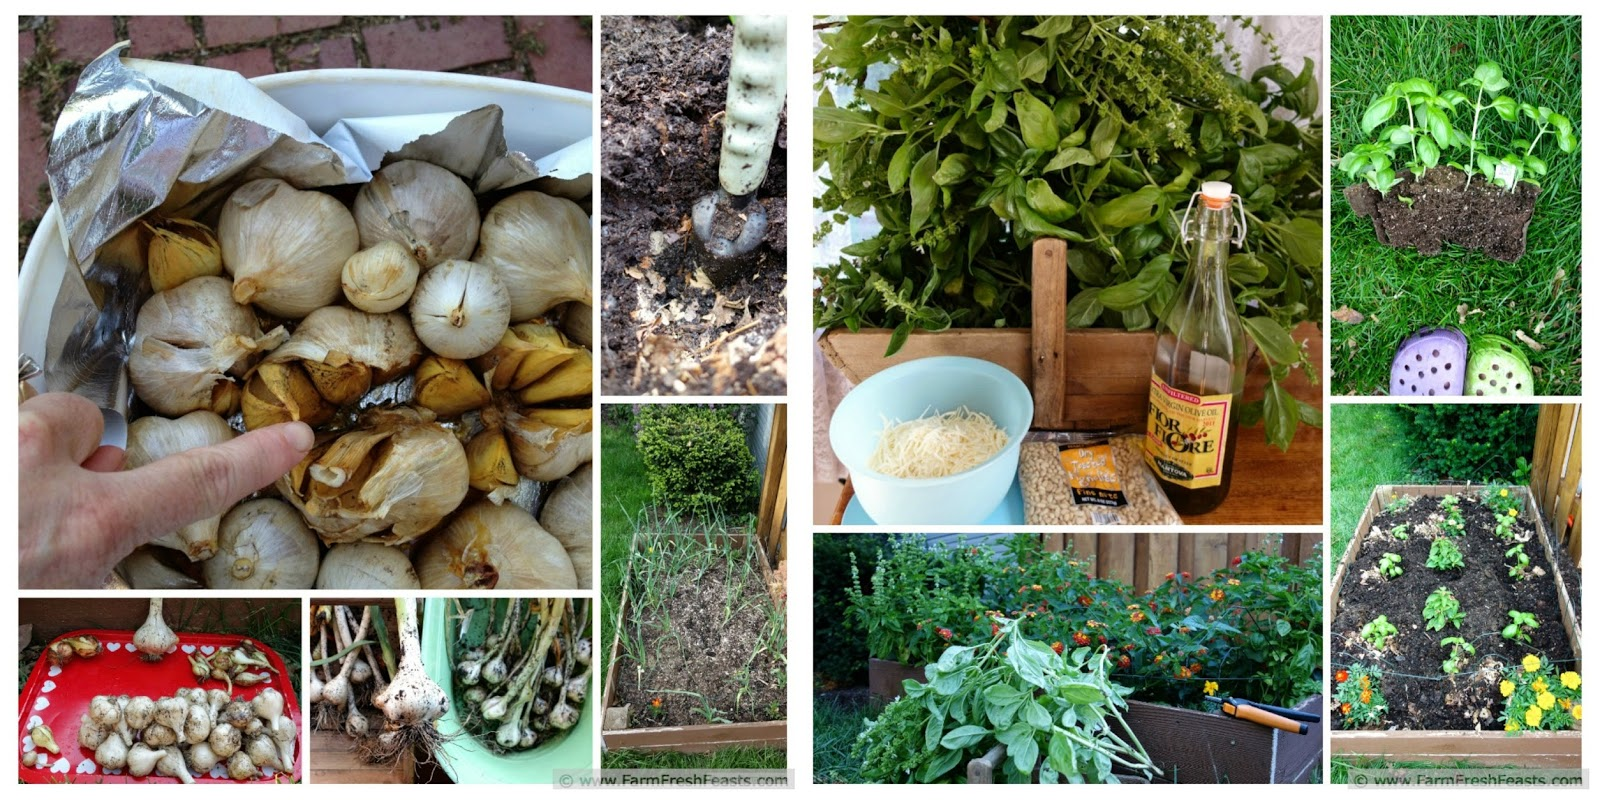 All About Garlic | Farm Fresh Feasts